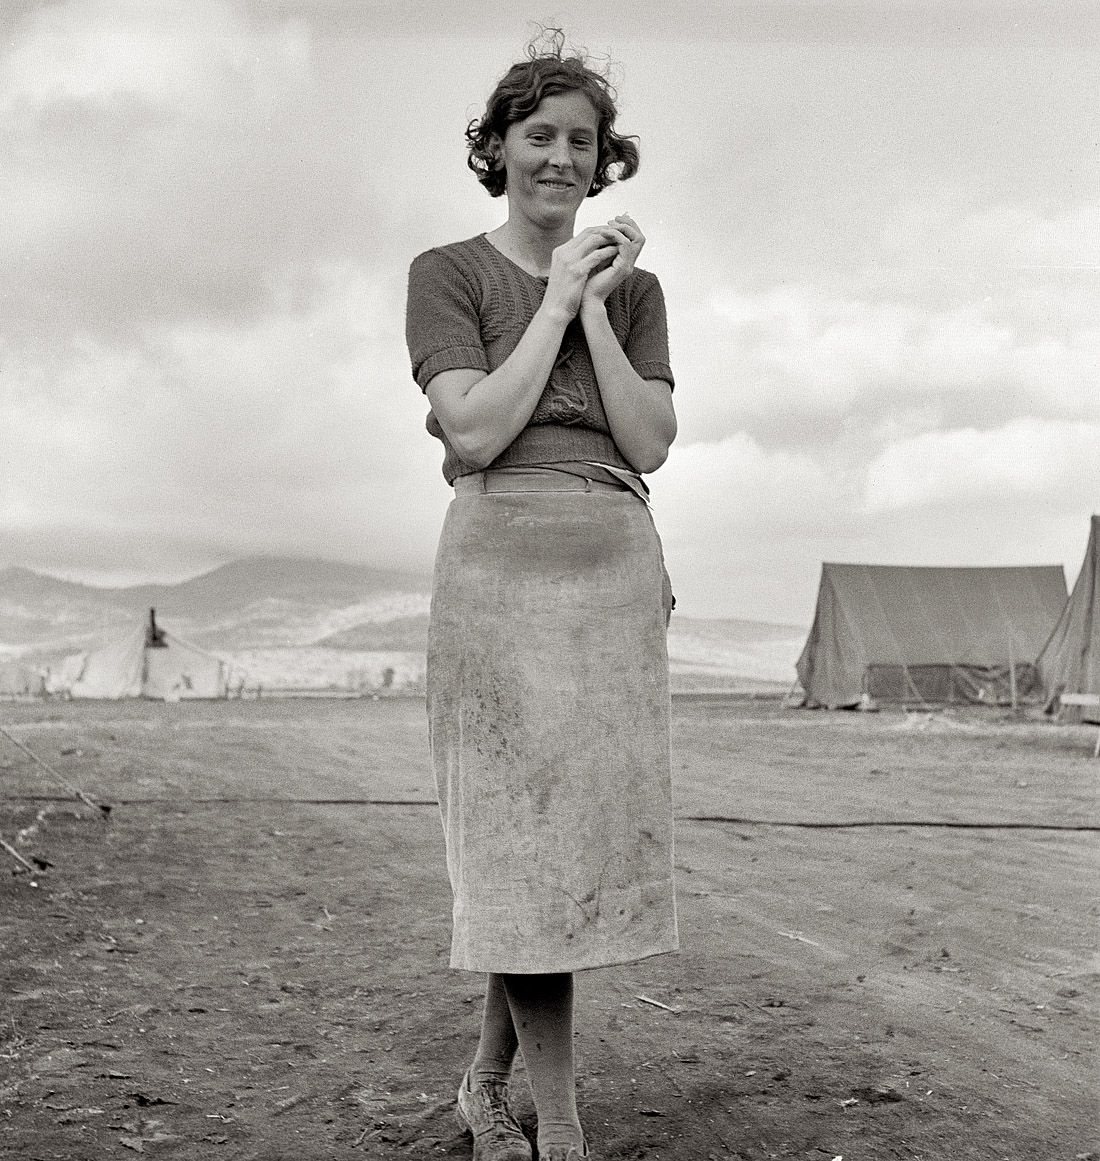 """October 1939. """"Young migrant mother has just finished washing. Merrill Farm Security Administration camp, Klamath County, Oregon."""" Medium format nitrate negative by Dorothea Lange for the FSA."""